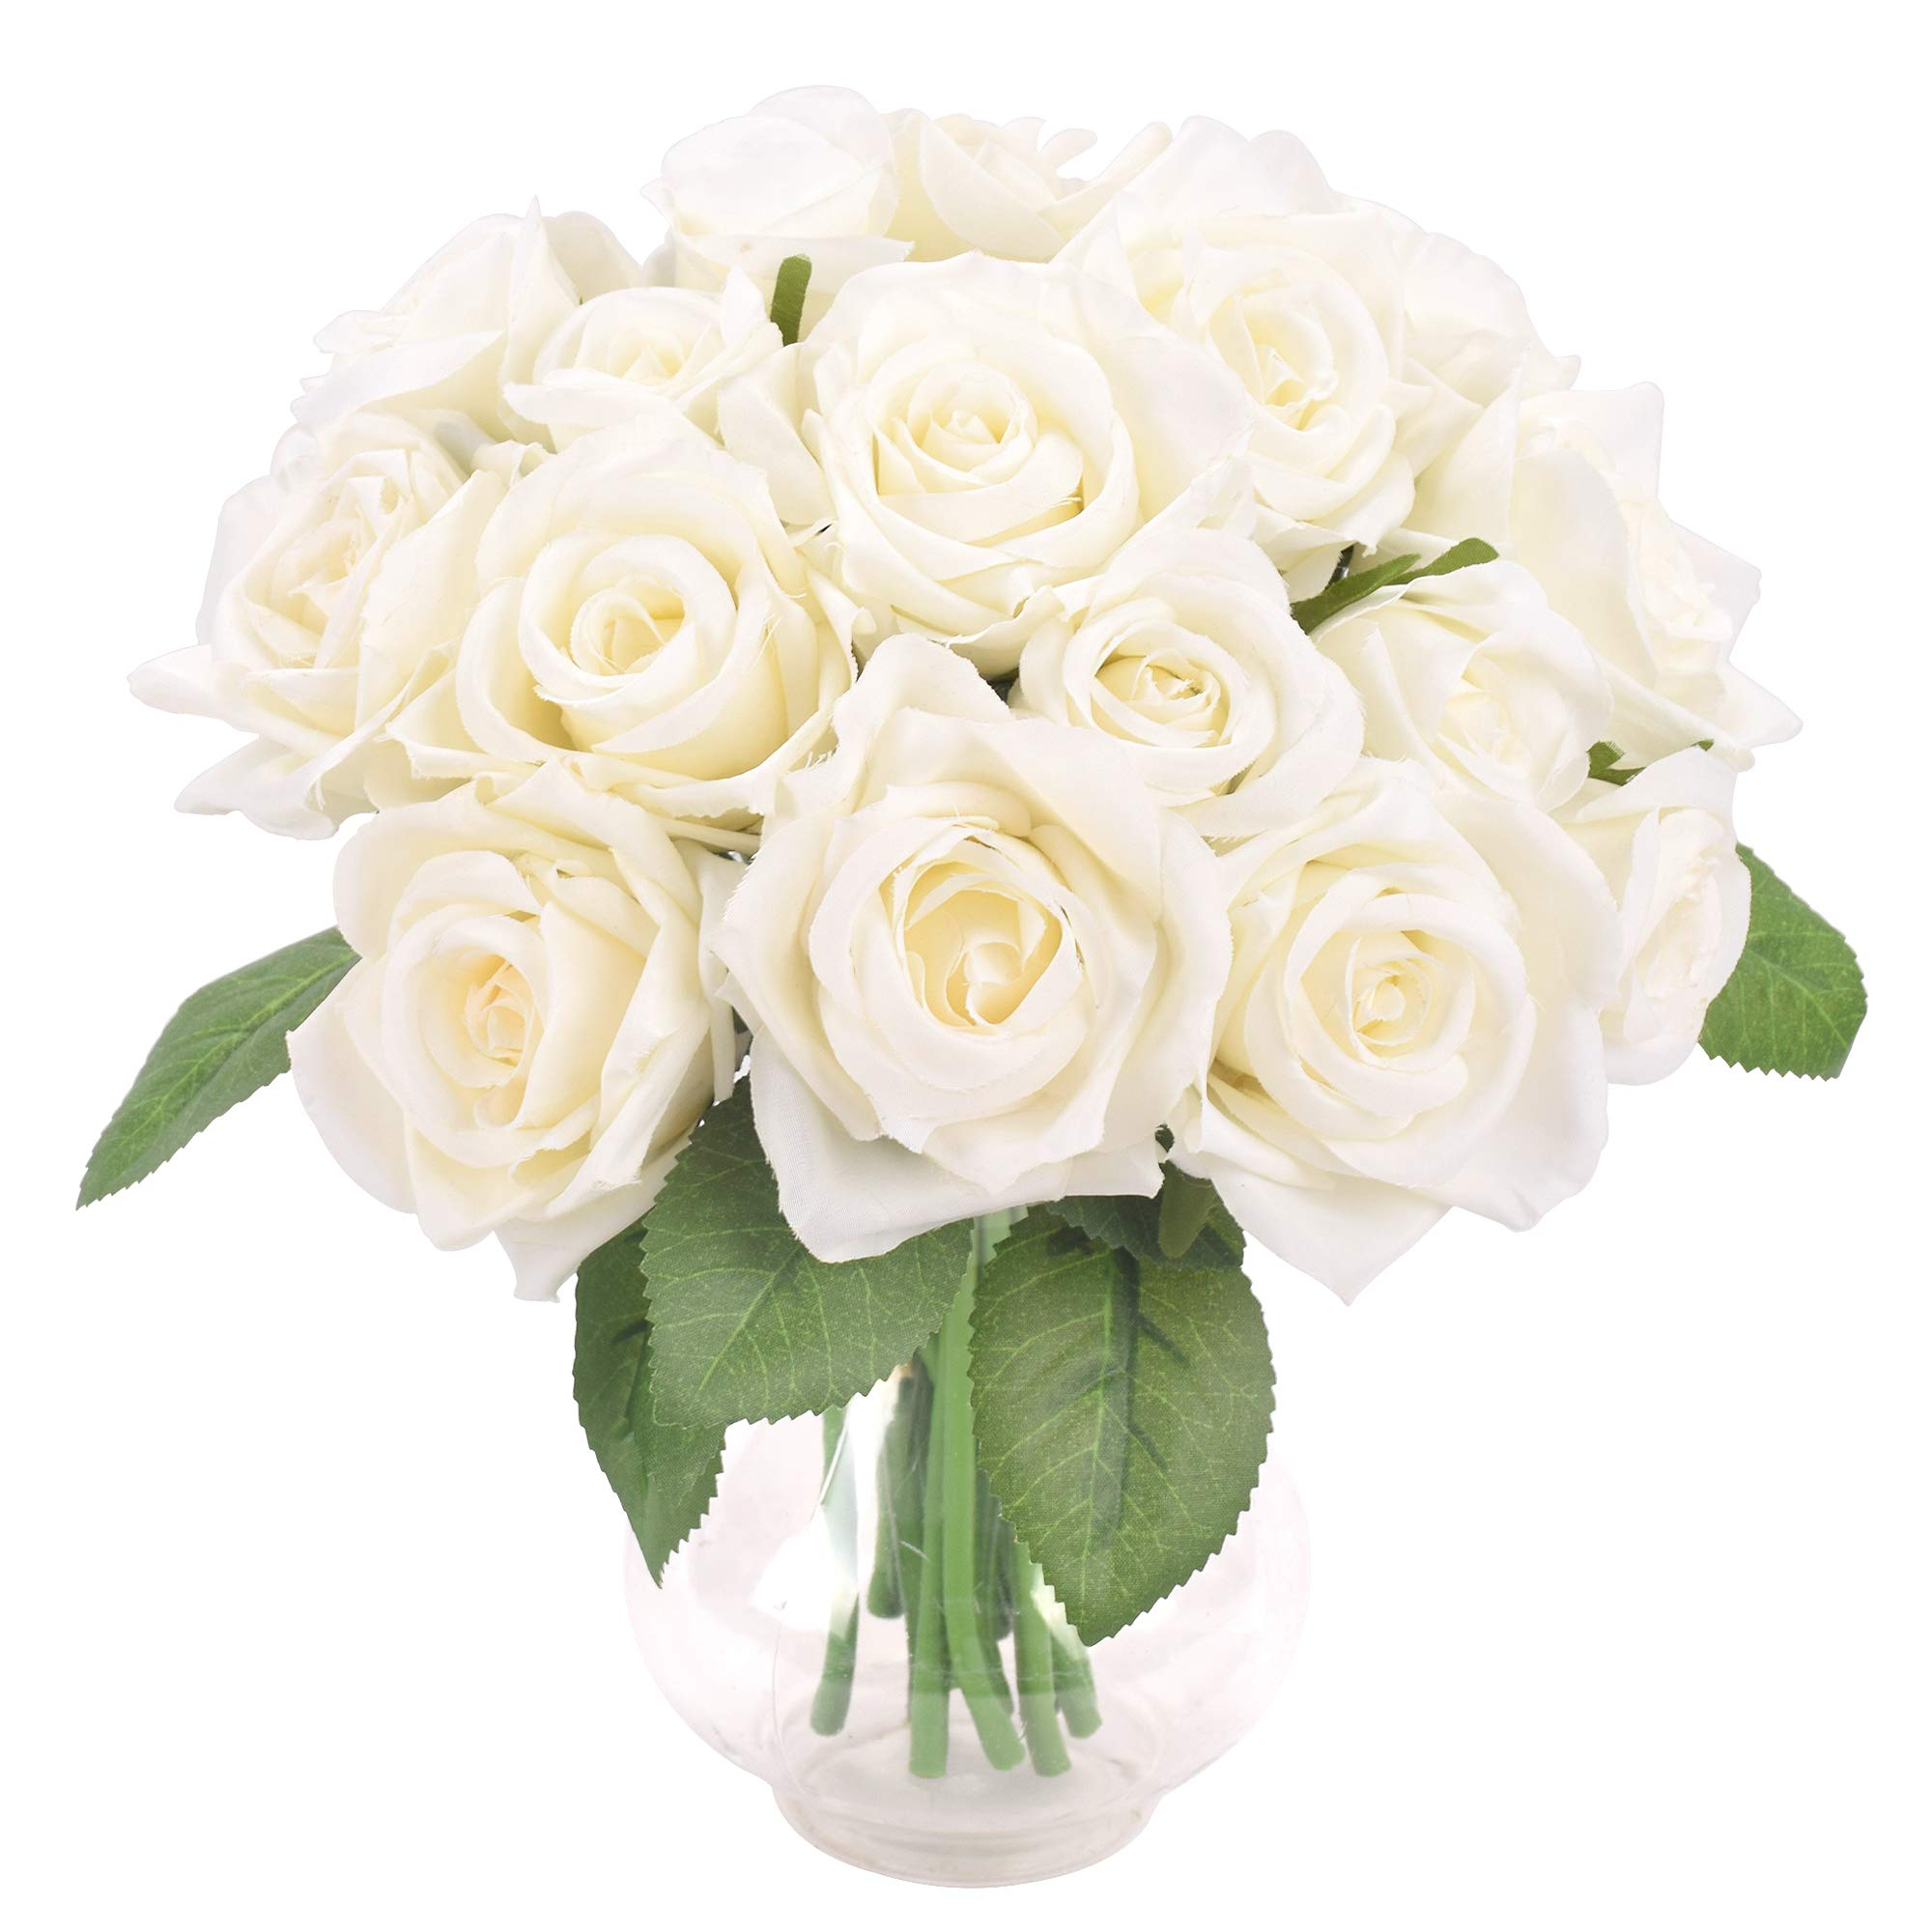 Famibay Rose Artificial Flower 18 Heads Roses Fake 2 Bouquets for Wedding Silk Artificial Flower Bouquet  sc 1 st  Amazon UK & Vase and Artificial Flowers: Amazon.co.uk